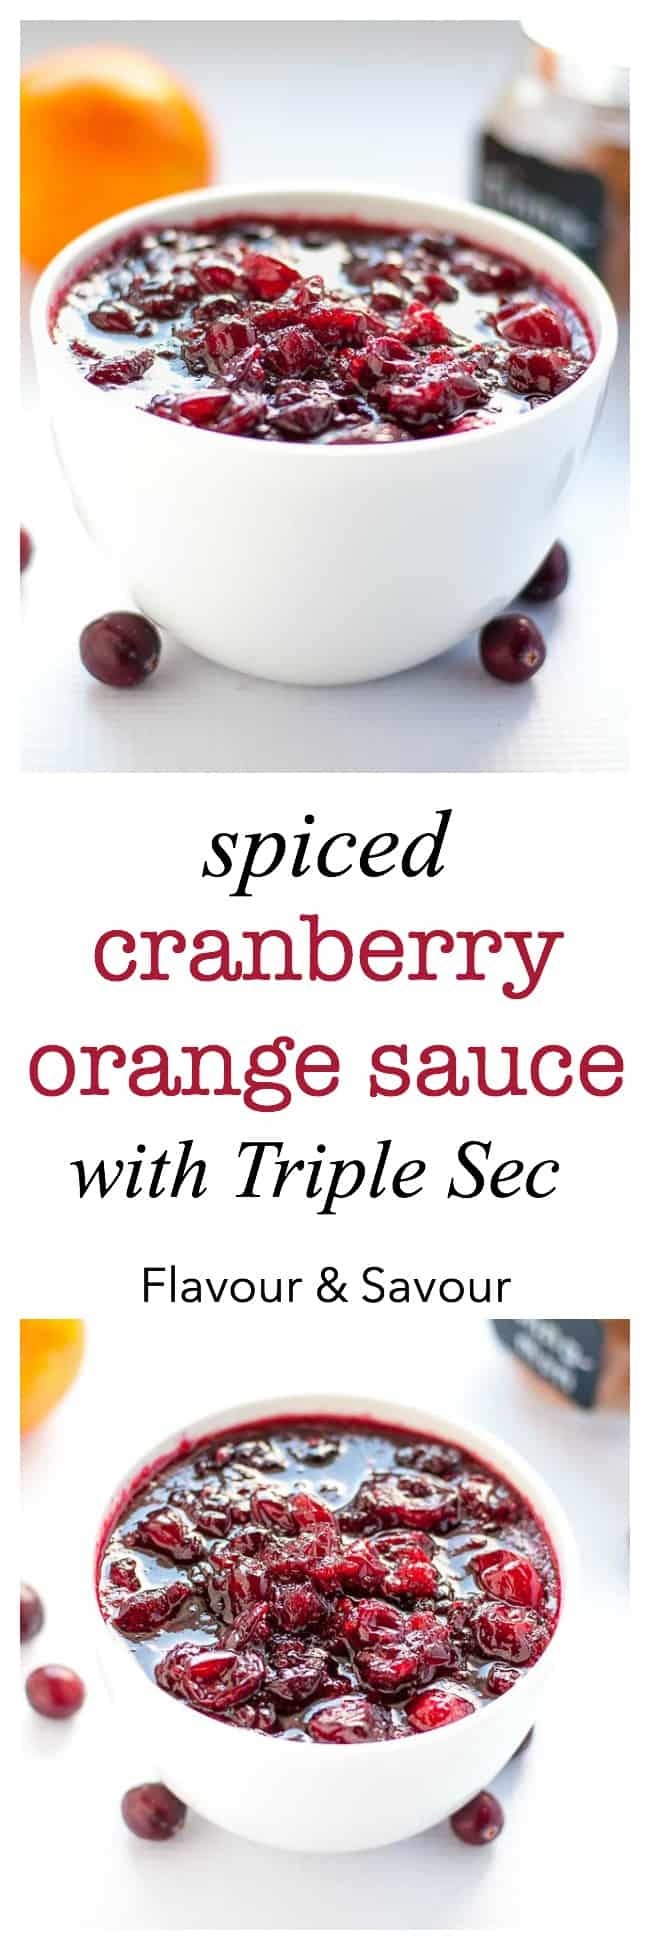 This homemade cranberry sauce is 100 times better than the canned variety! It's lightly flavoured with orange juice, cinnamon and cloves and (optionally) spiked with Triple Sec. Gourmet cranberry sauce for your holiday dinners.  www.flavourandsavour.com